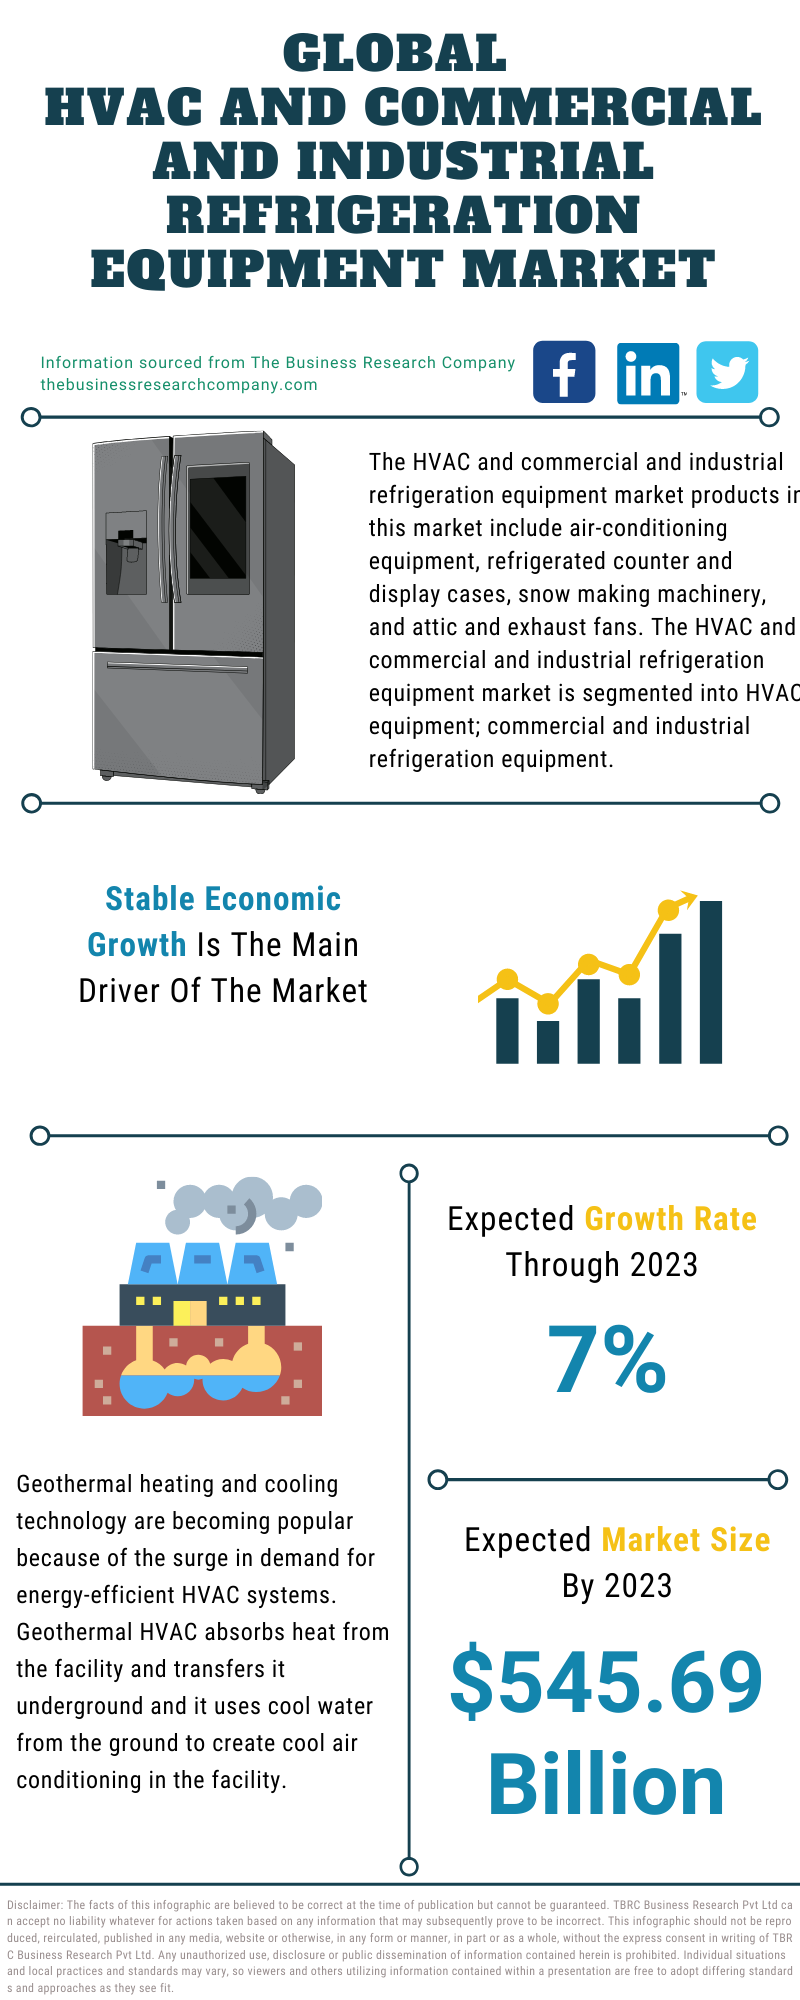 HVAC And Commercial And Industrial Refrigeration Equipment Market